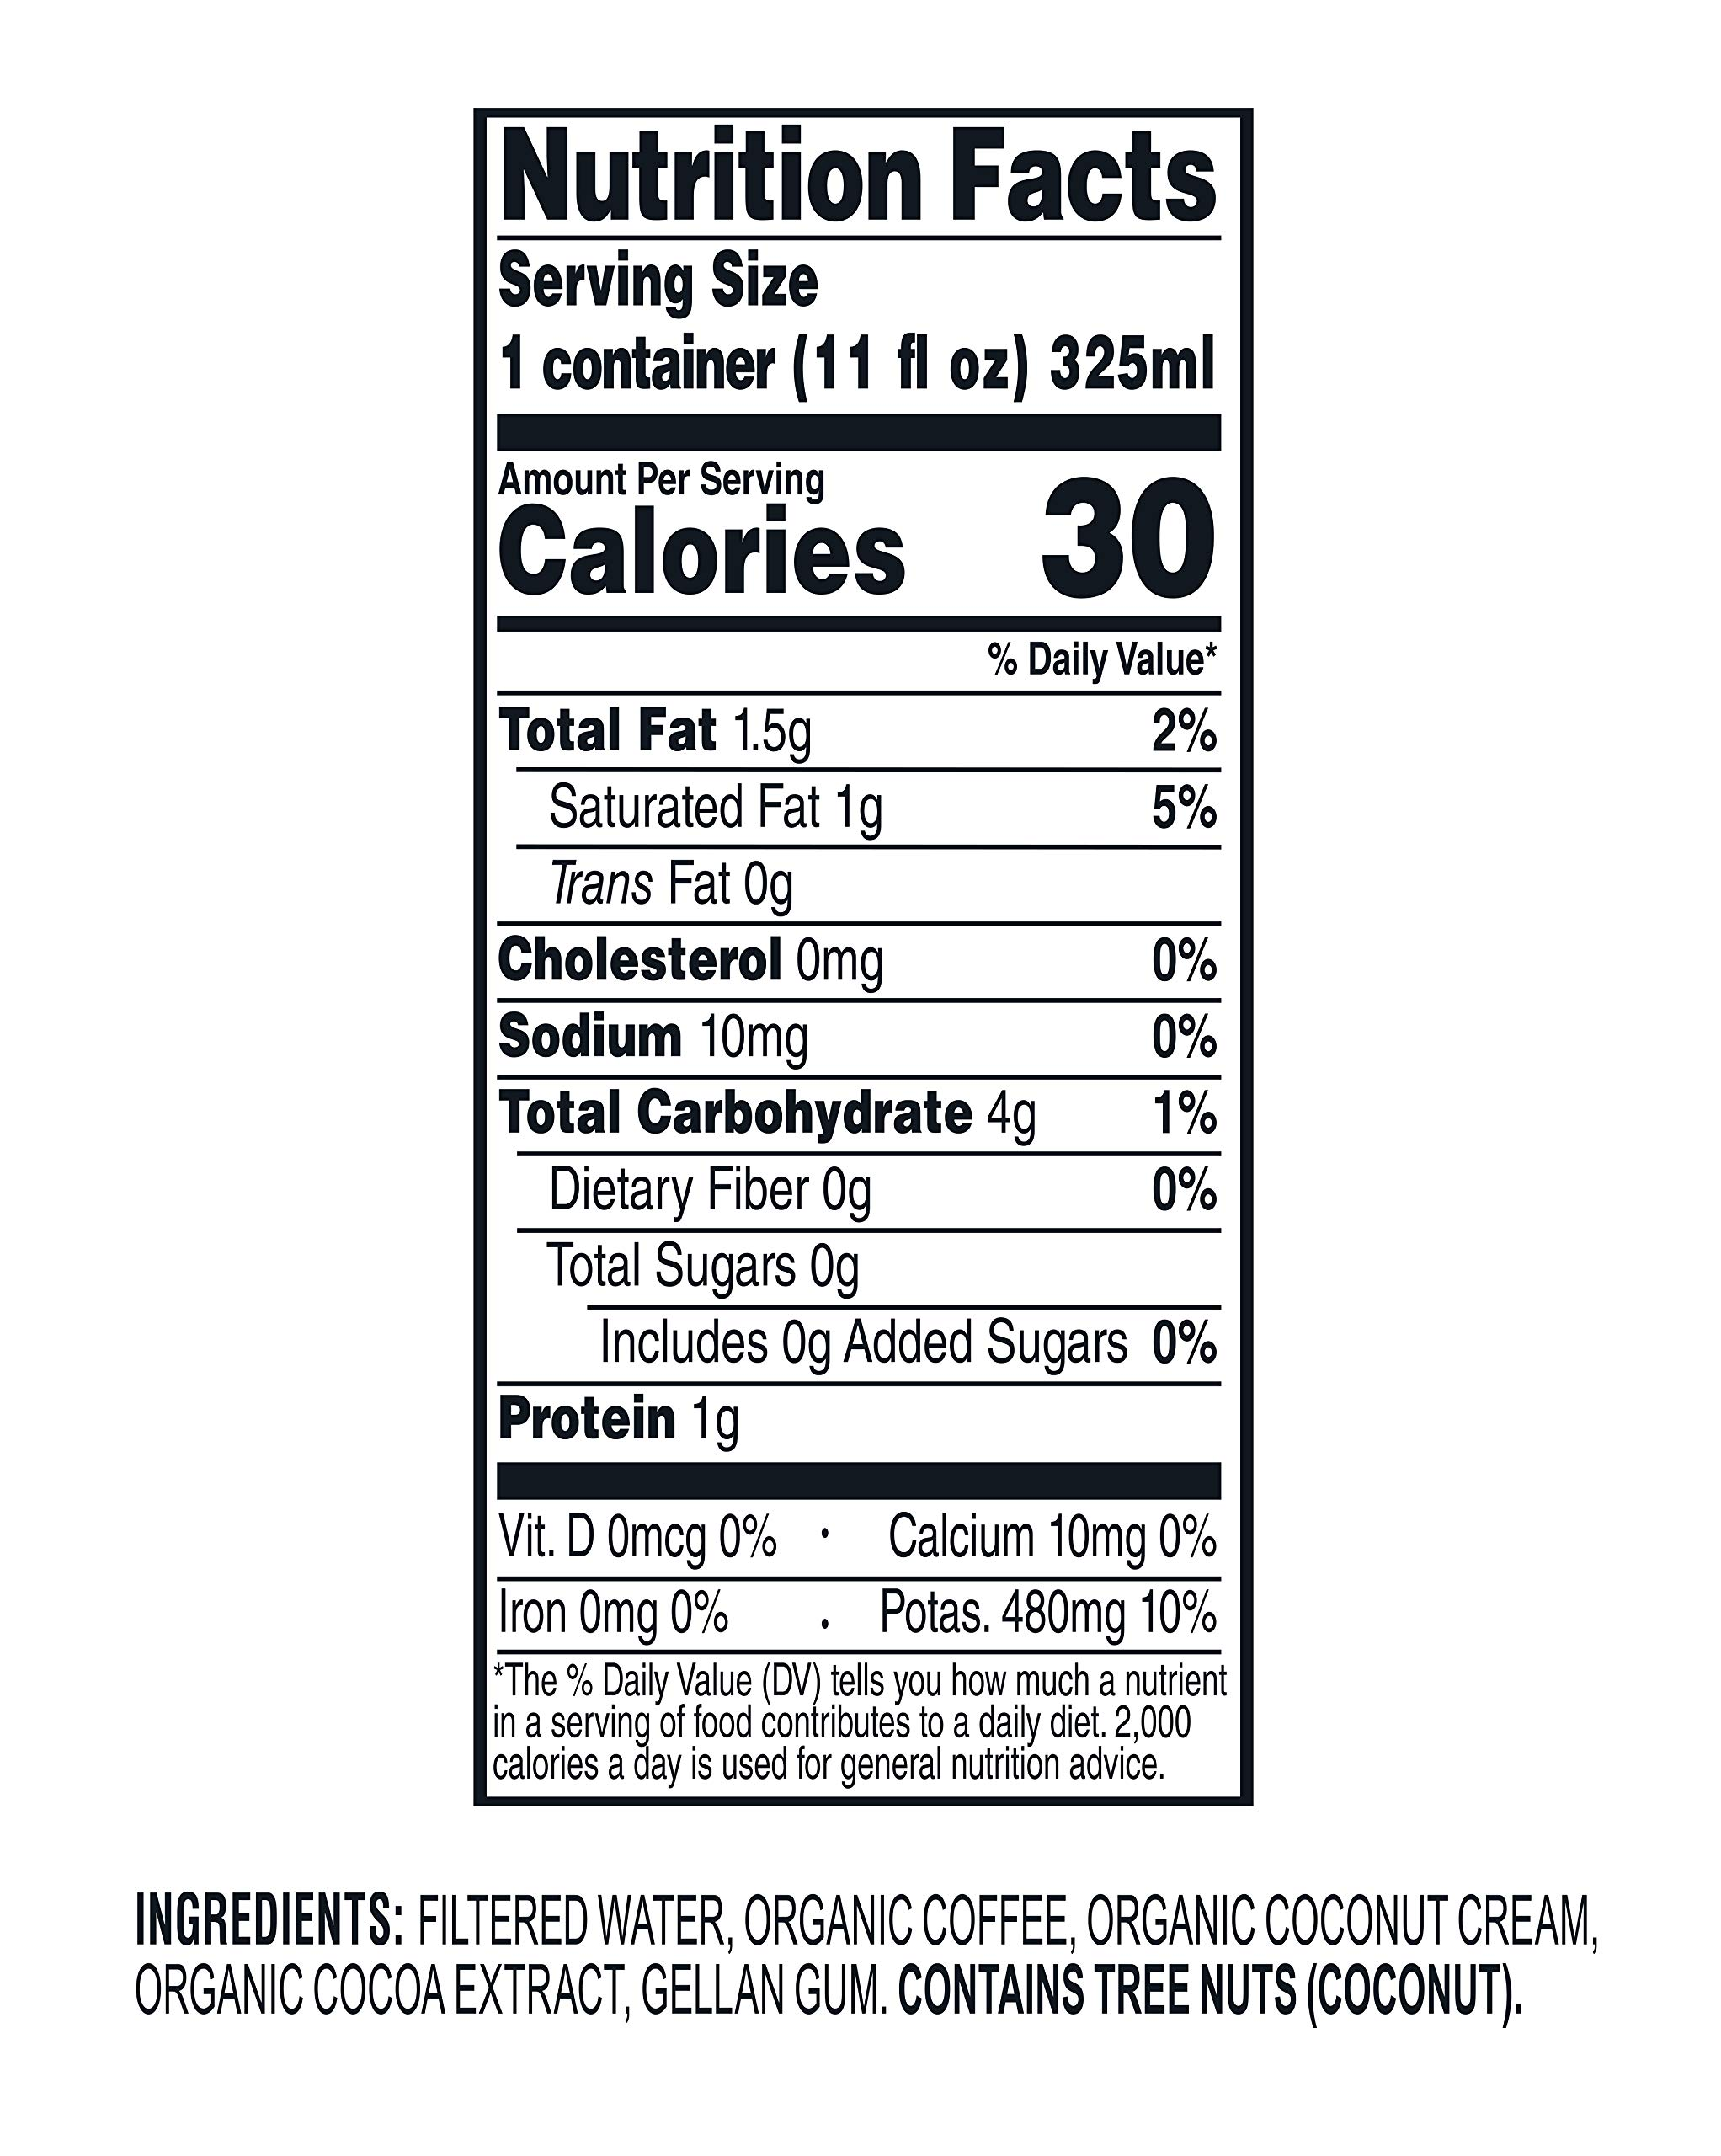 Wandering Bear Organic Cold Brew Coffee On-the-Go 11 oz Carton, Mocha With Splash of Coconut Milk, No Sugar, Ready to Drink, Not a Concentrate (Pack of 12) by Wandering Bear (Image #8)